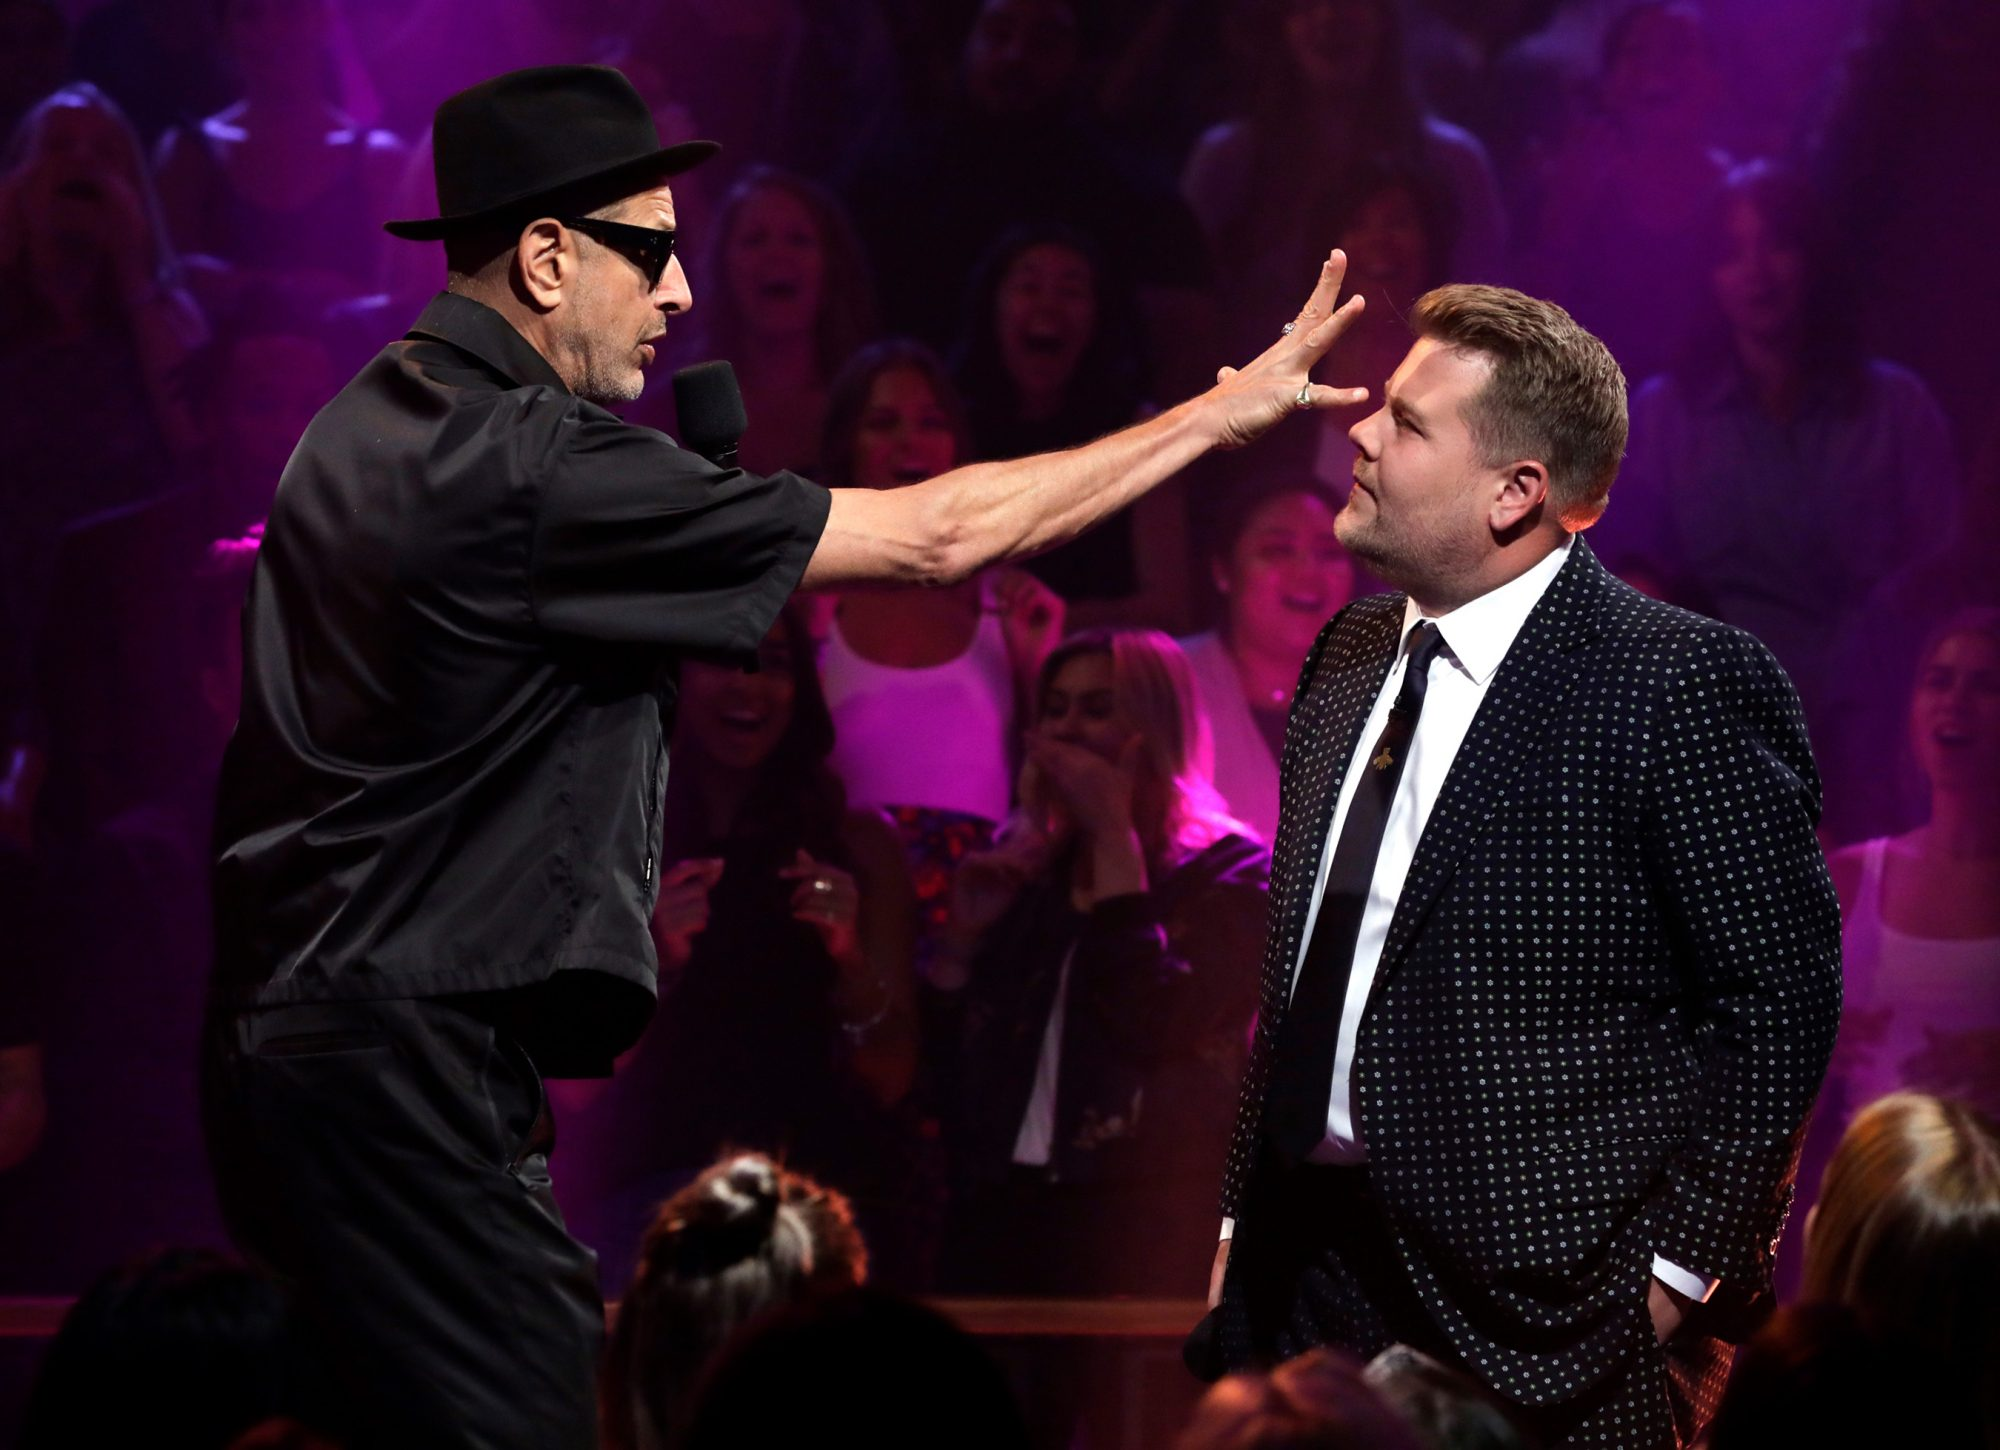 Jeff Goldblum performs a sketch, Drop The Mic, with James on THE LATE LATE SHOW WITH JAMES CORDEN